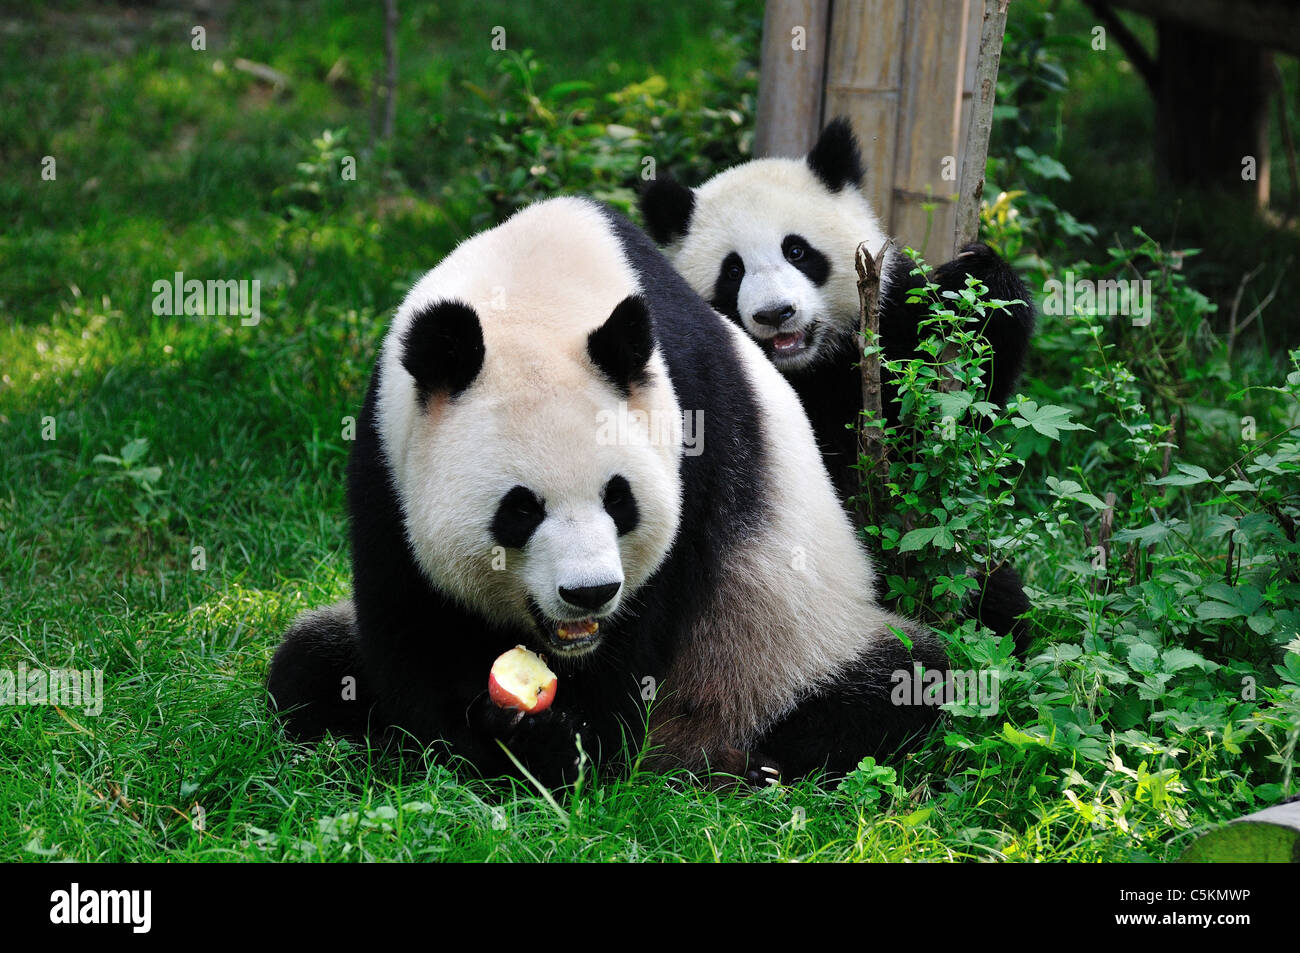 Giant panda mom and cub. Chengdu, Sichuan, China. - Stock Image